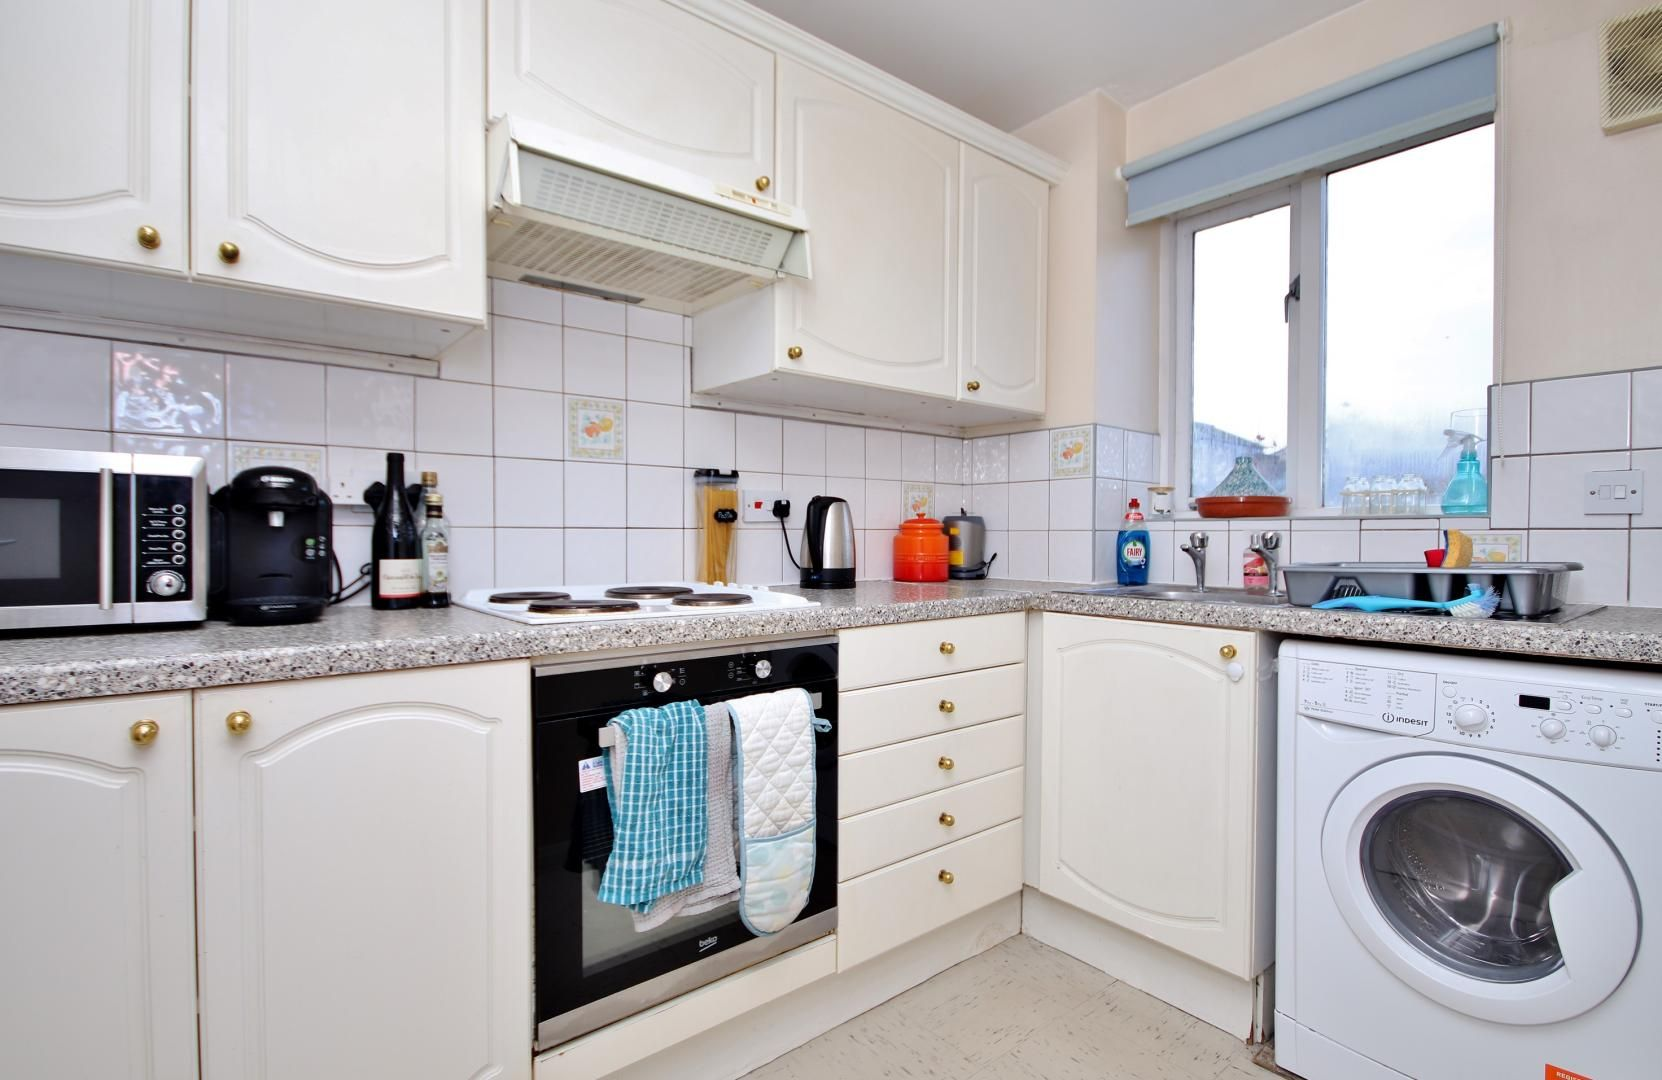 1 bed flat to rent in Telegraph Place, E14